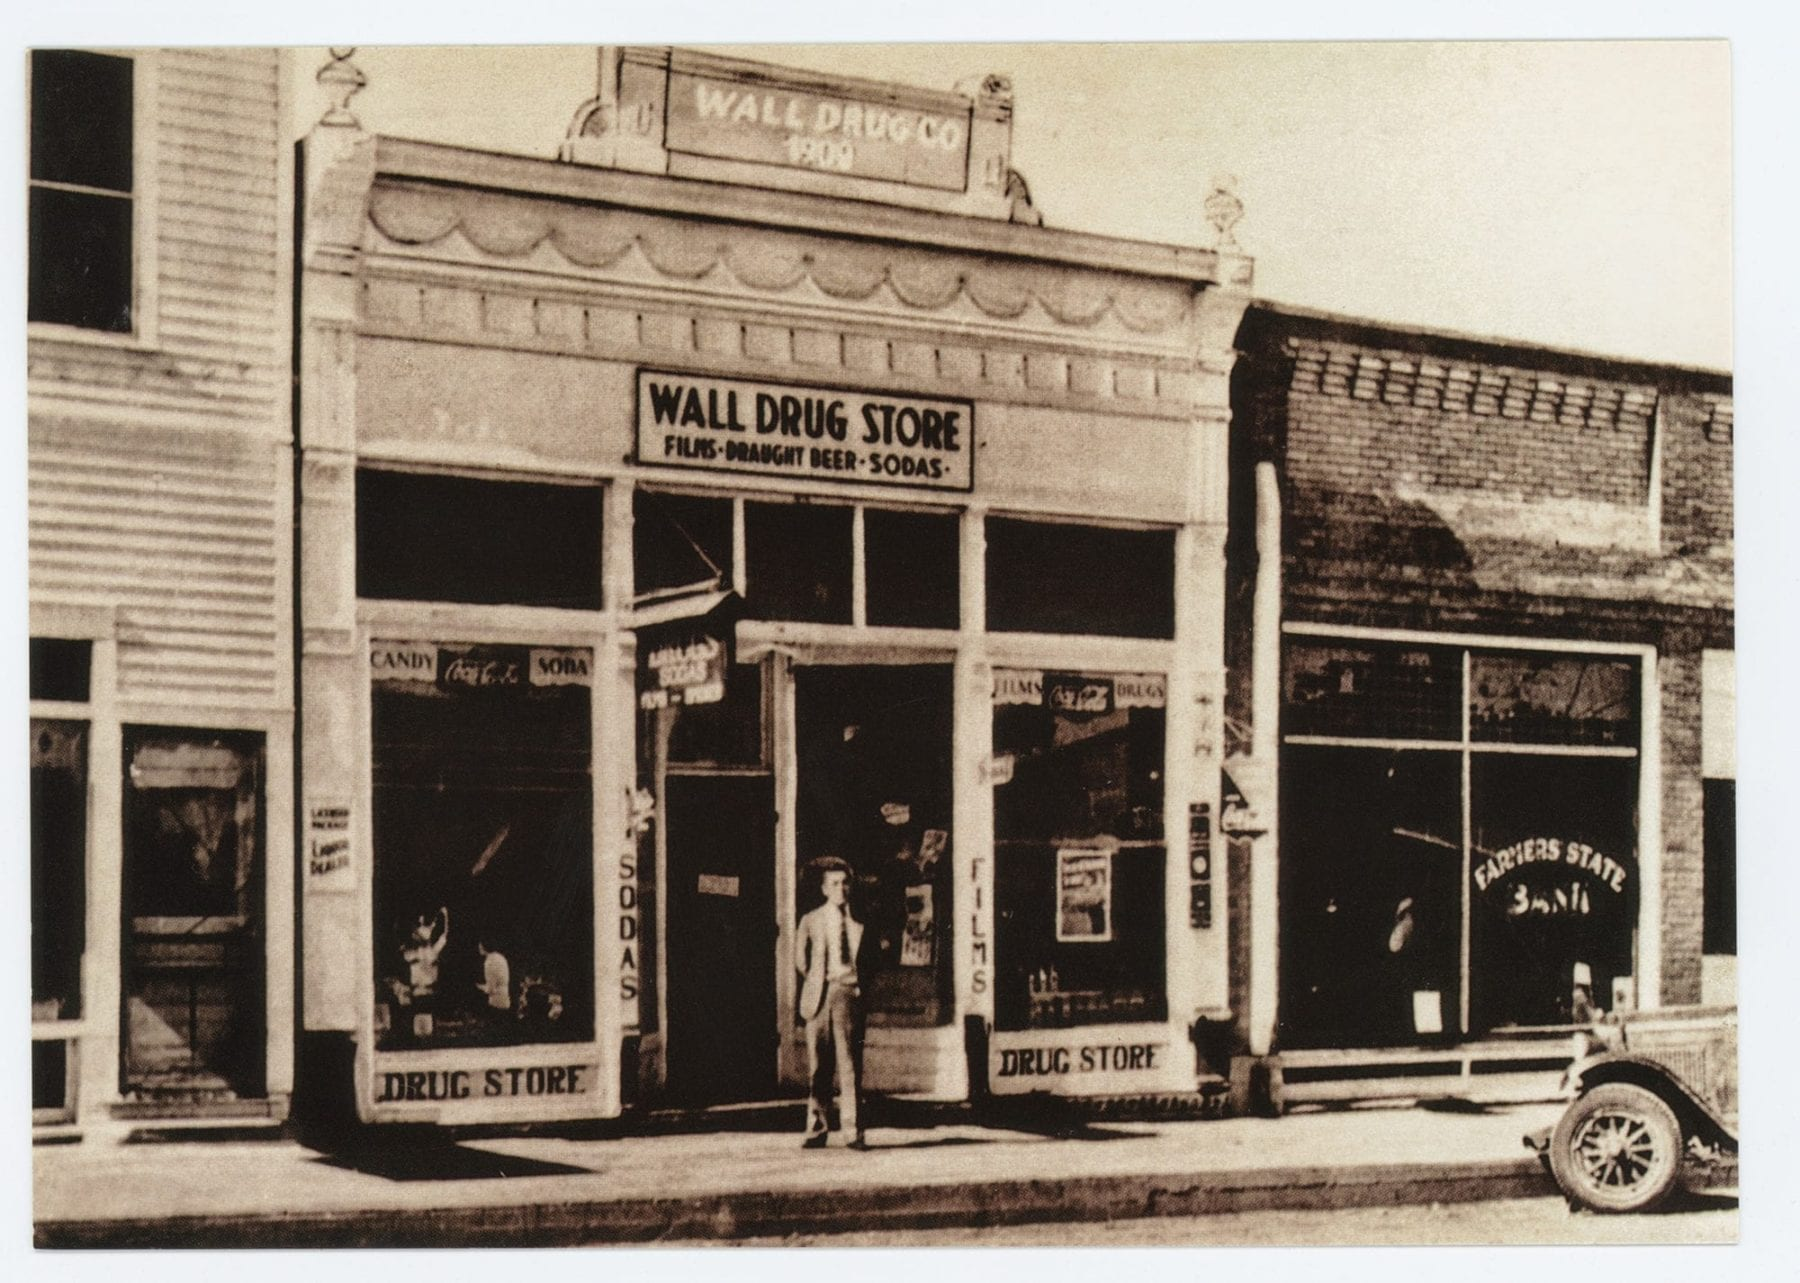 History of Wall Drug Store